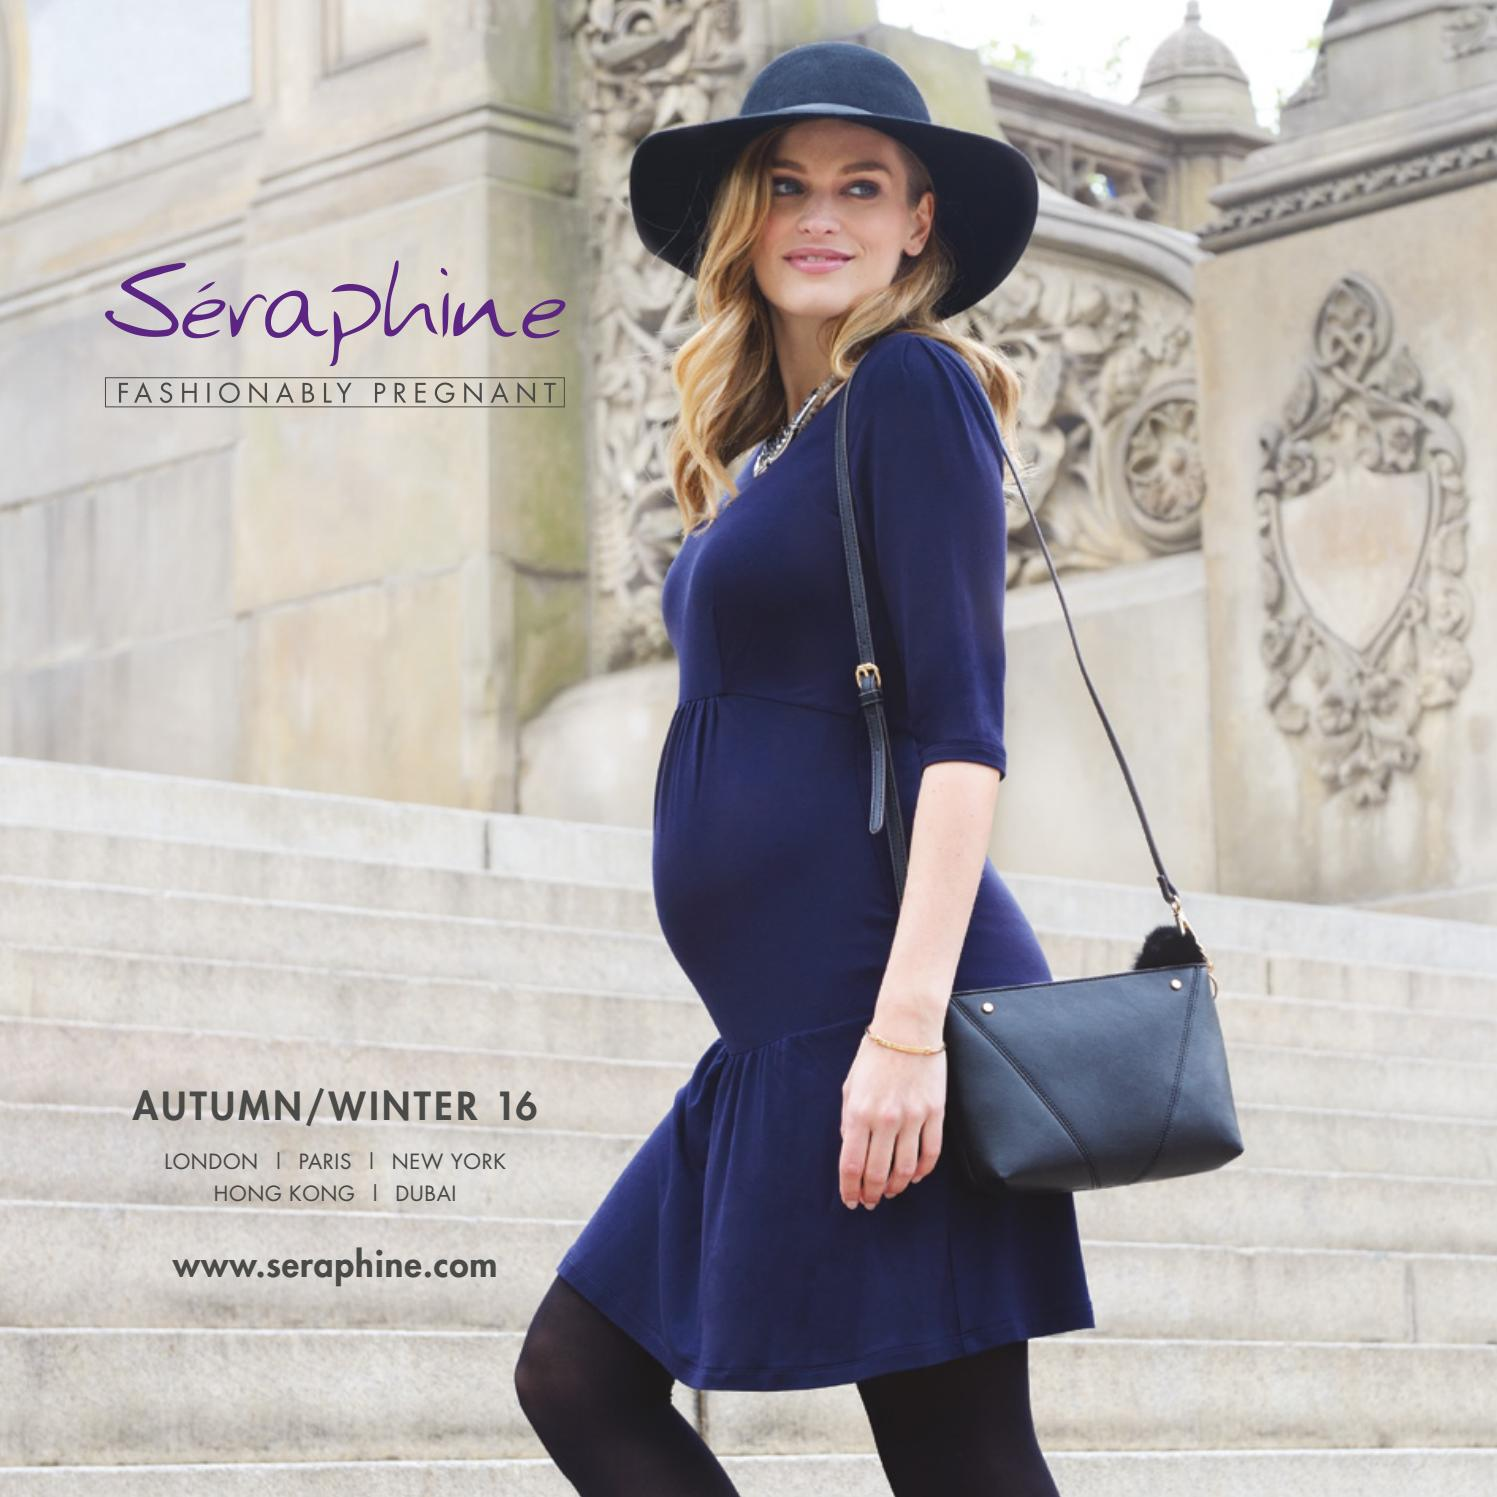 newest style of elegant in style outlet online Aw16 Brochure UK - Seraphine by Seraphine - issuu